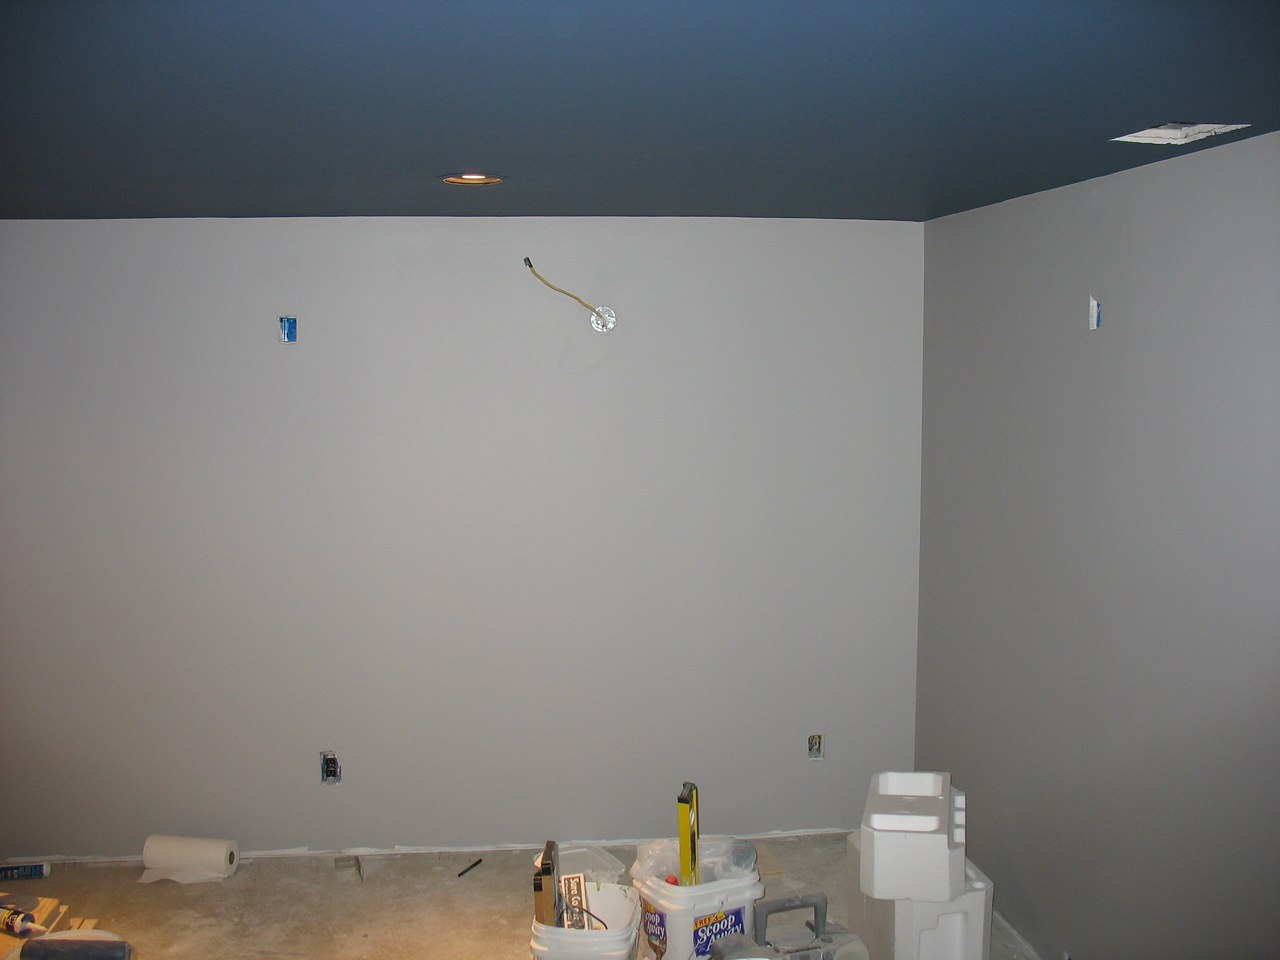 The ceiling is done, but the walls still need the color washing. The room also needs baseboards and crown molding.